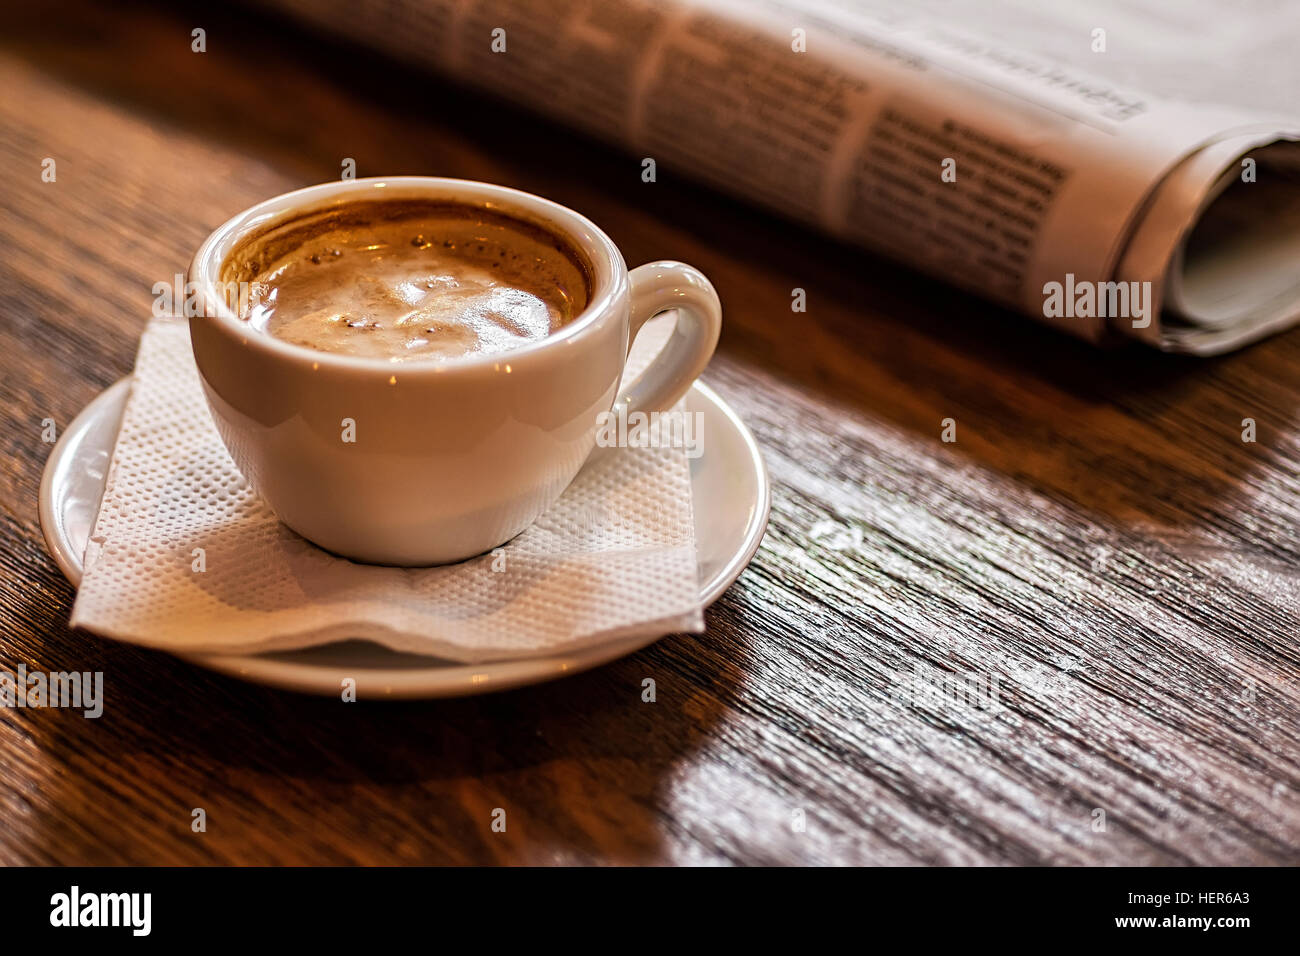 Coffee Cup and Newspaper on a Wooden Table. Good Morning or Coffee Break Concept. - Stock Image